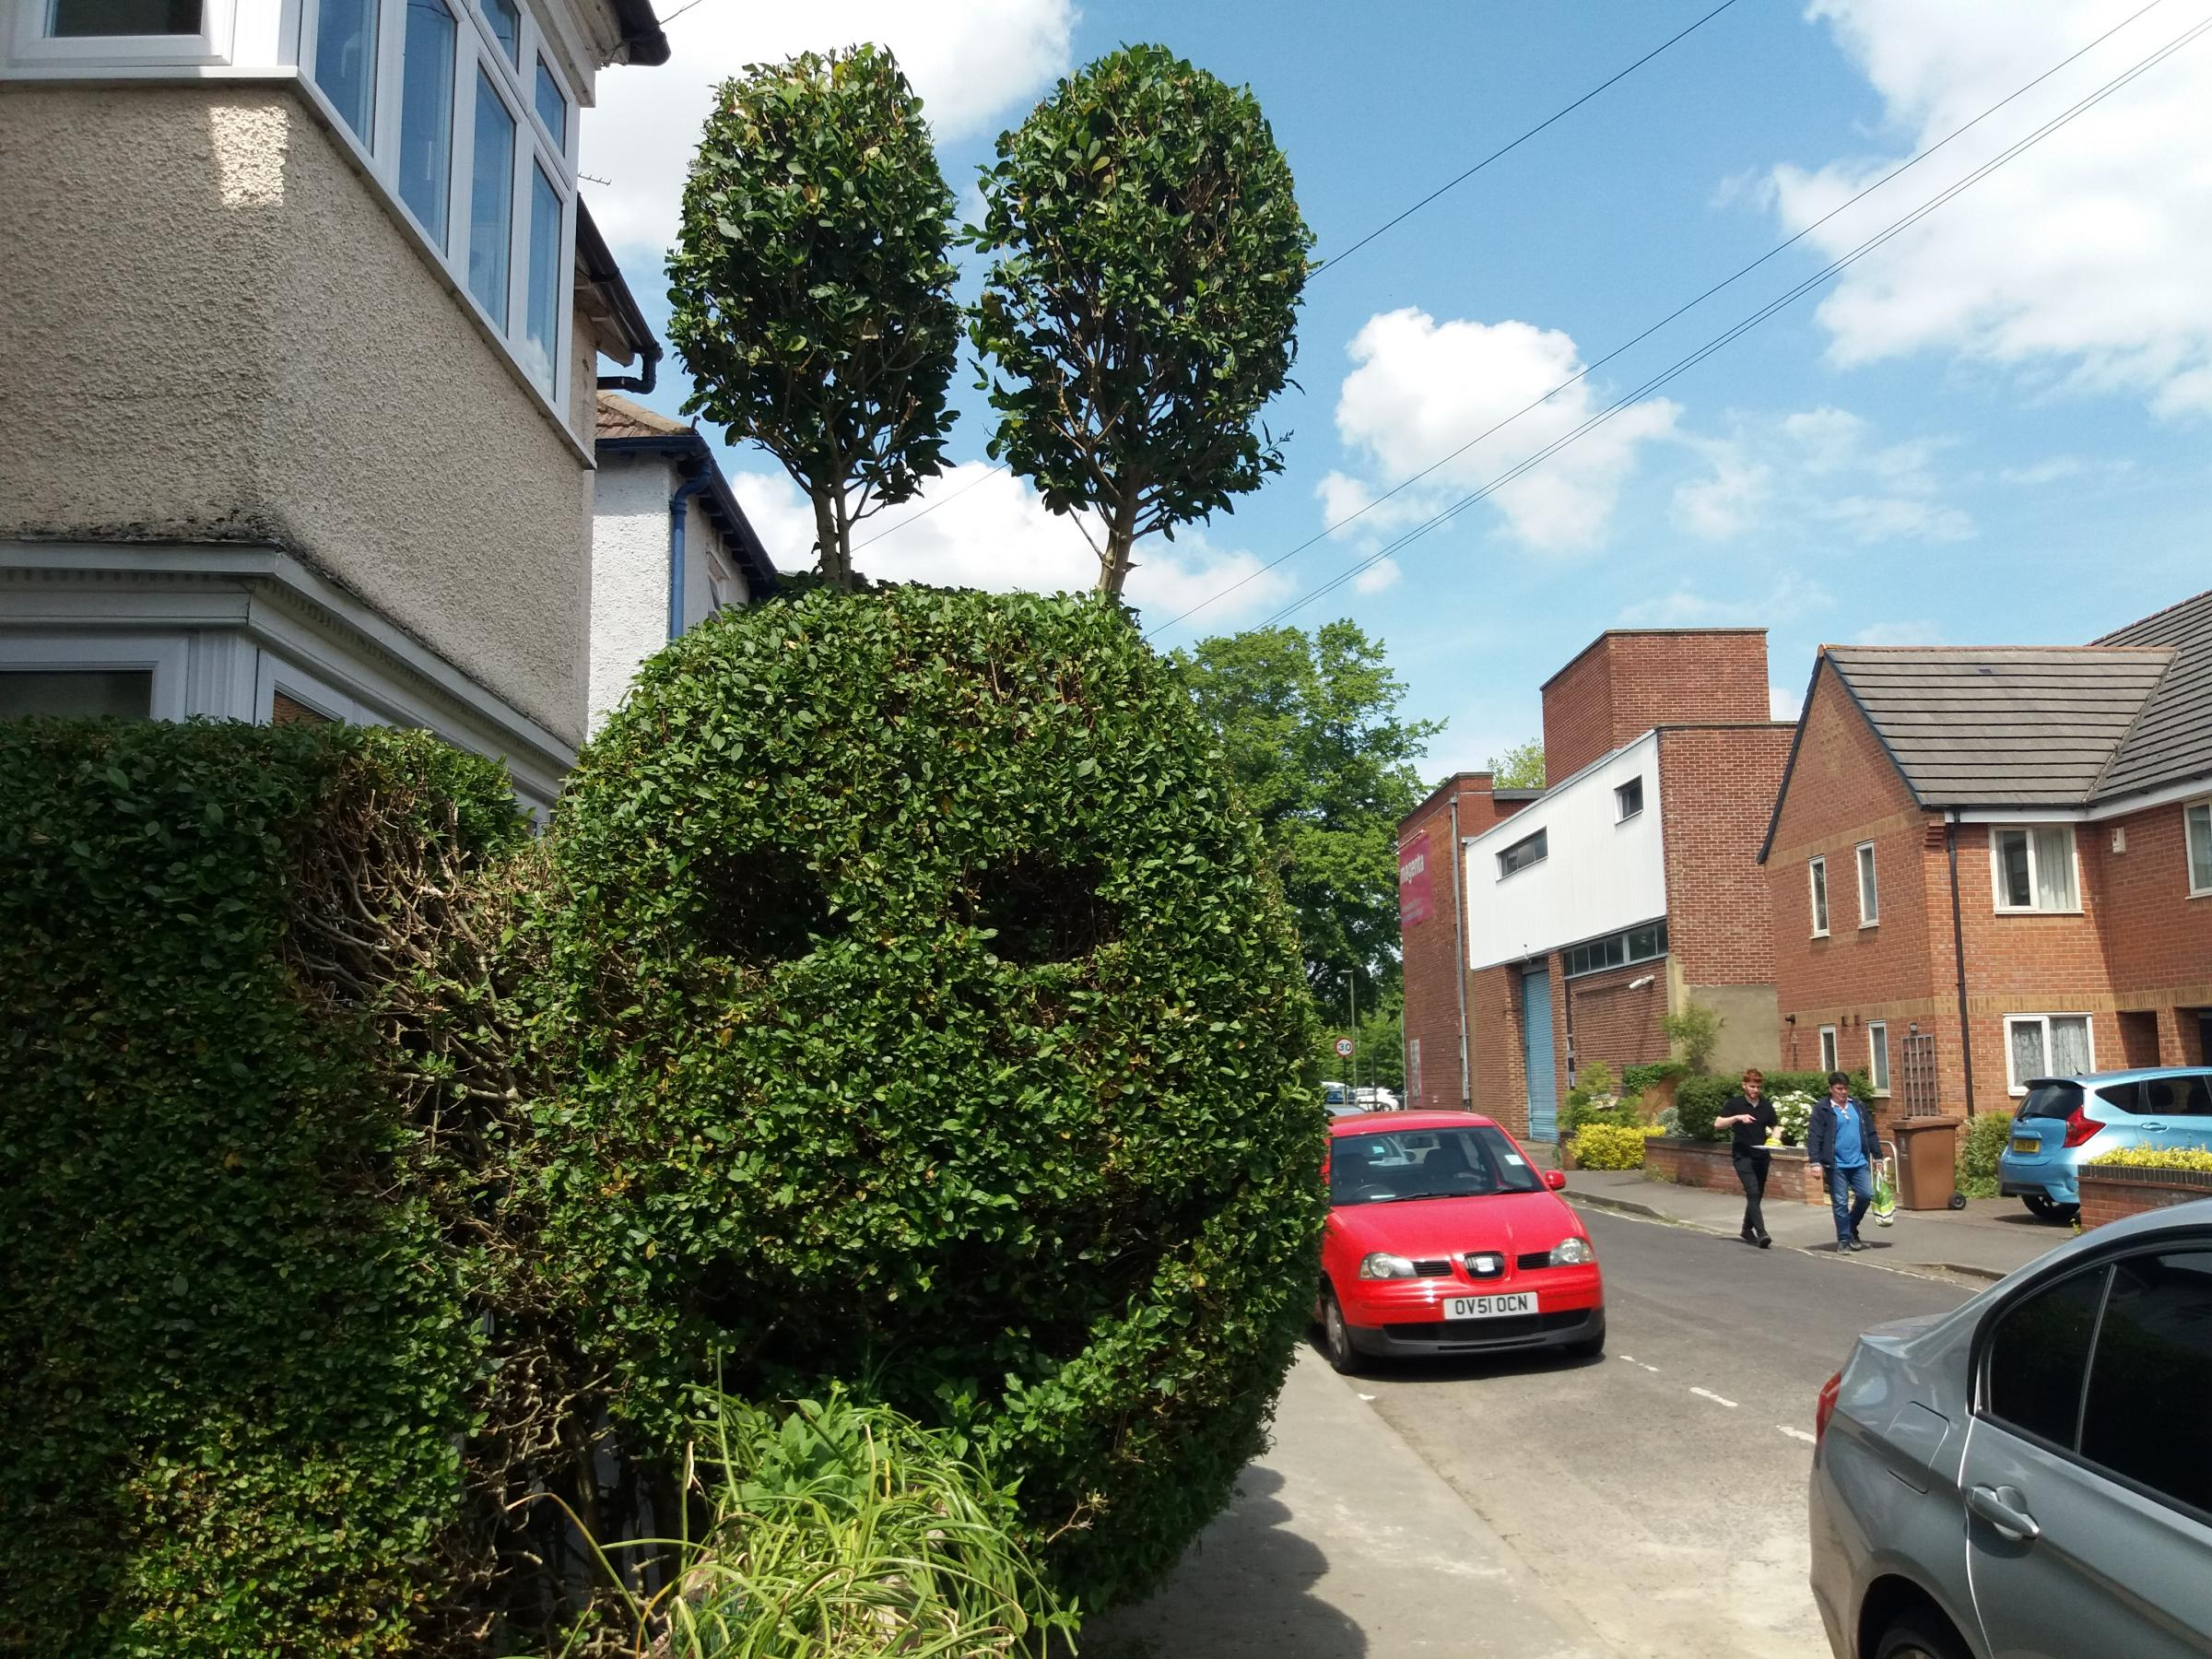 Oxford hedge caterpillar is topiary masterpiece